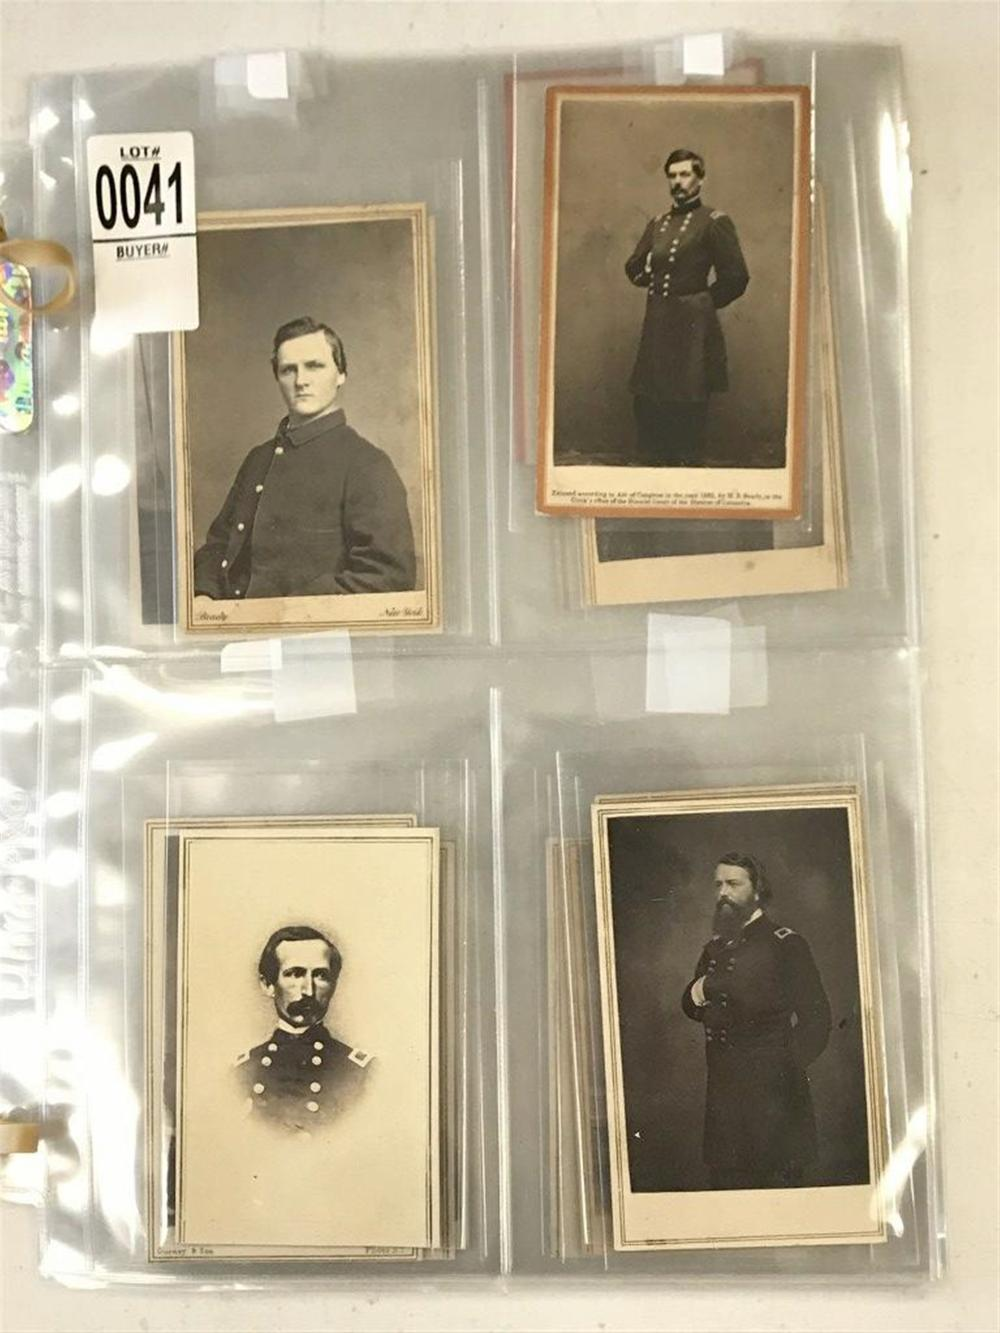 LOT OF 22 CDV'S OF CIVIL WAR SOLDIERS. PHOTOGRAPHERS ARE BRADY, ANTHONY, GURNEY. INCLUDES MCCLELLAN, THOMAS WOOD(WIA MURFREESBORO), JOHN POPE, HALLECK, BURNSIDE, JOHN DIX(NY DRAFT RIOTS), JOHN MARTINDALE, COMMANDER MONTGOMERY, QUINCY GILLMORE, CAPT.